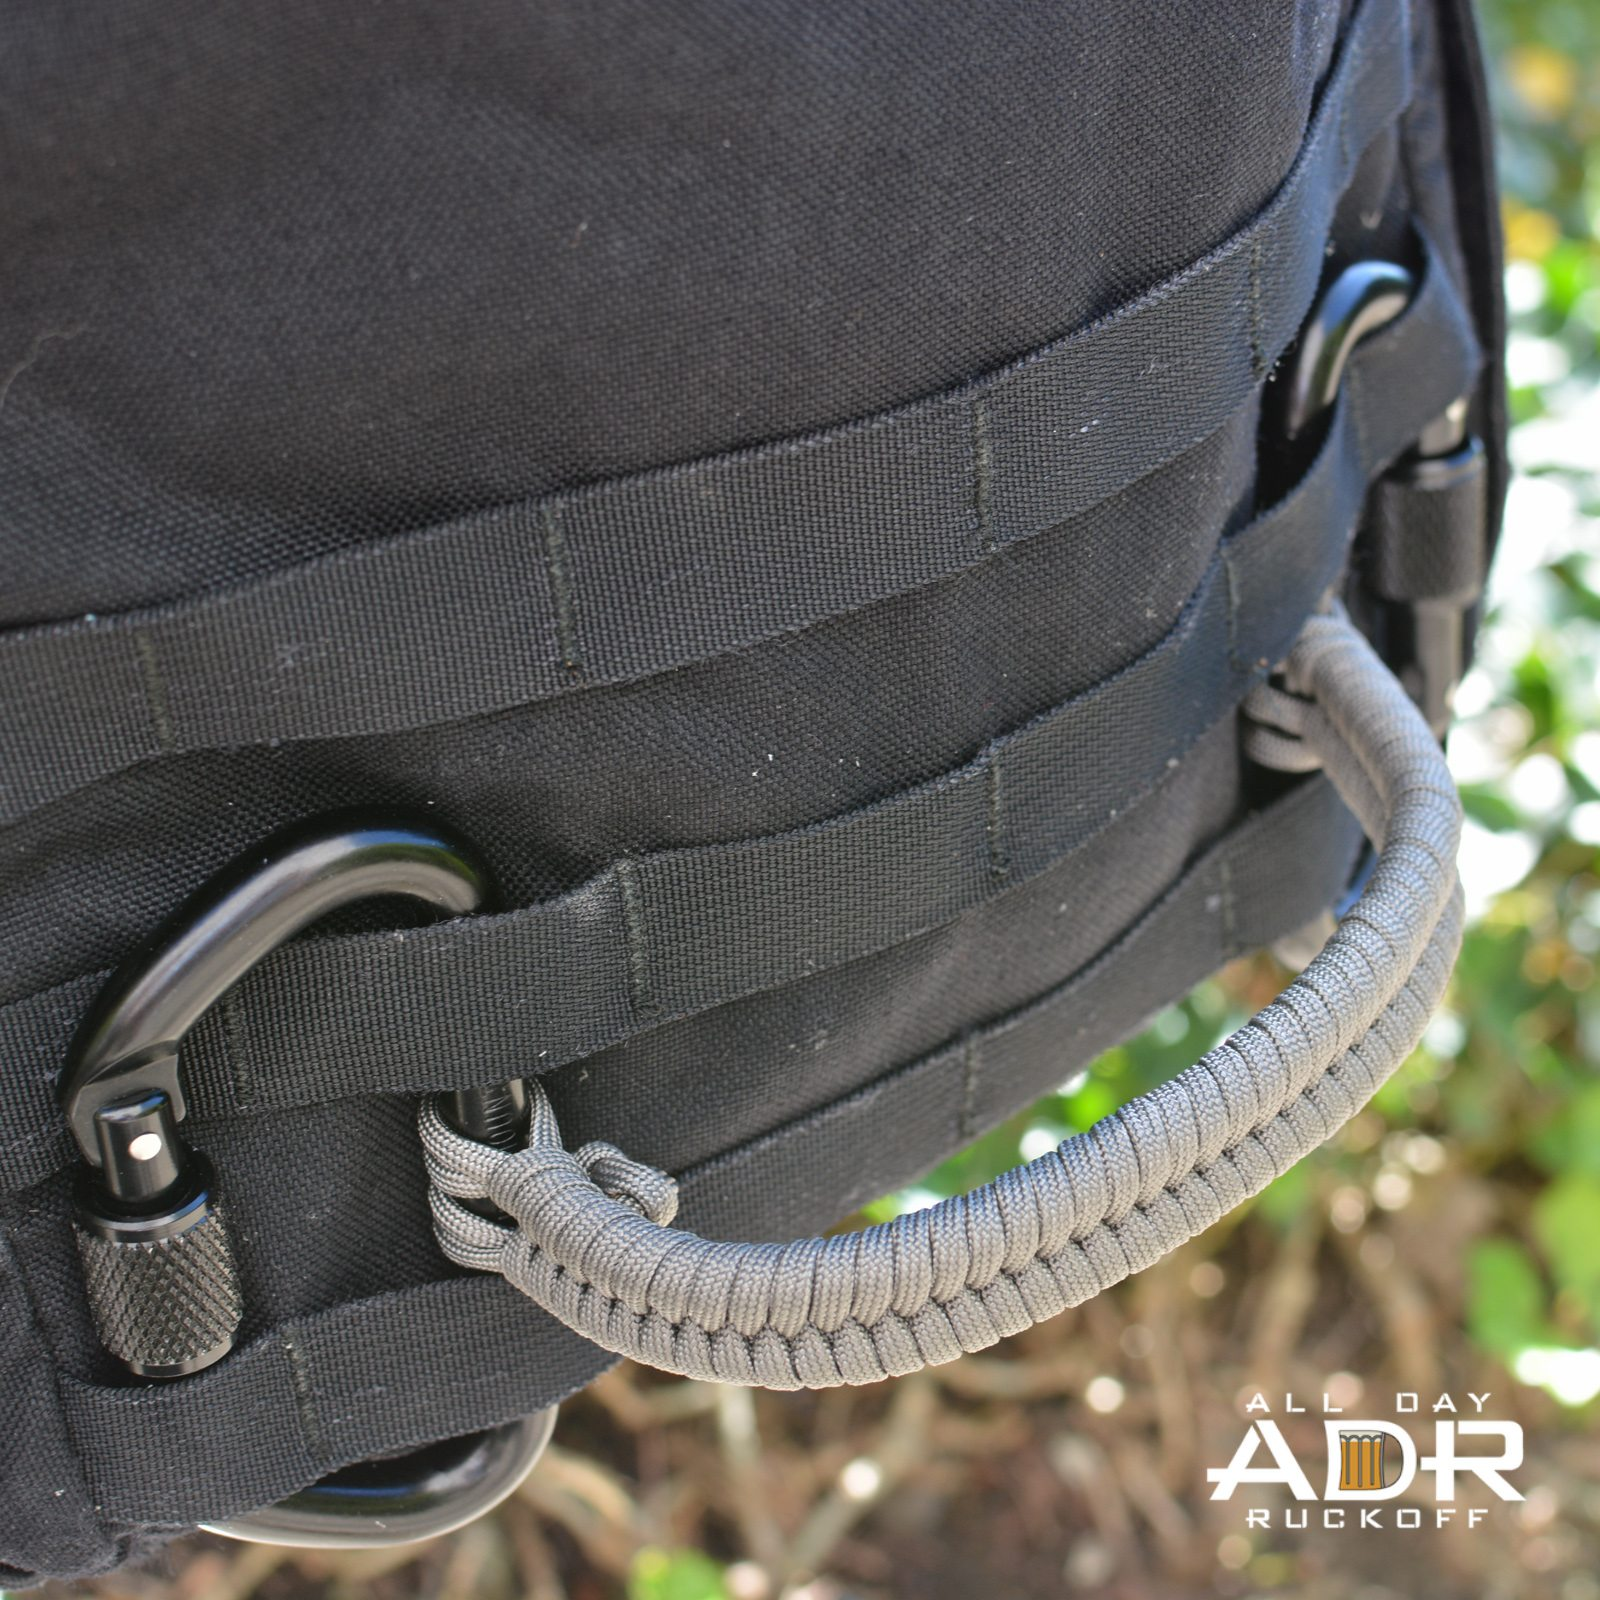 Paracord Fishtail Handle - All Day Ruckoff